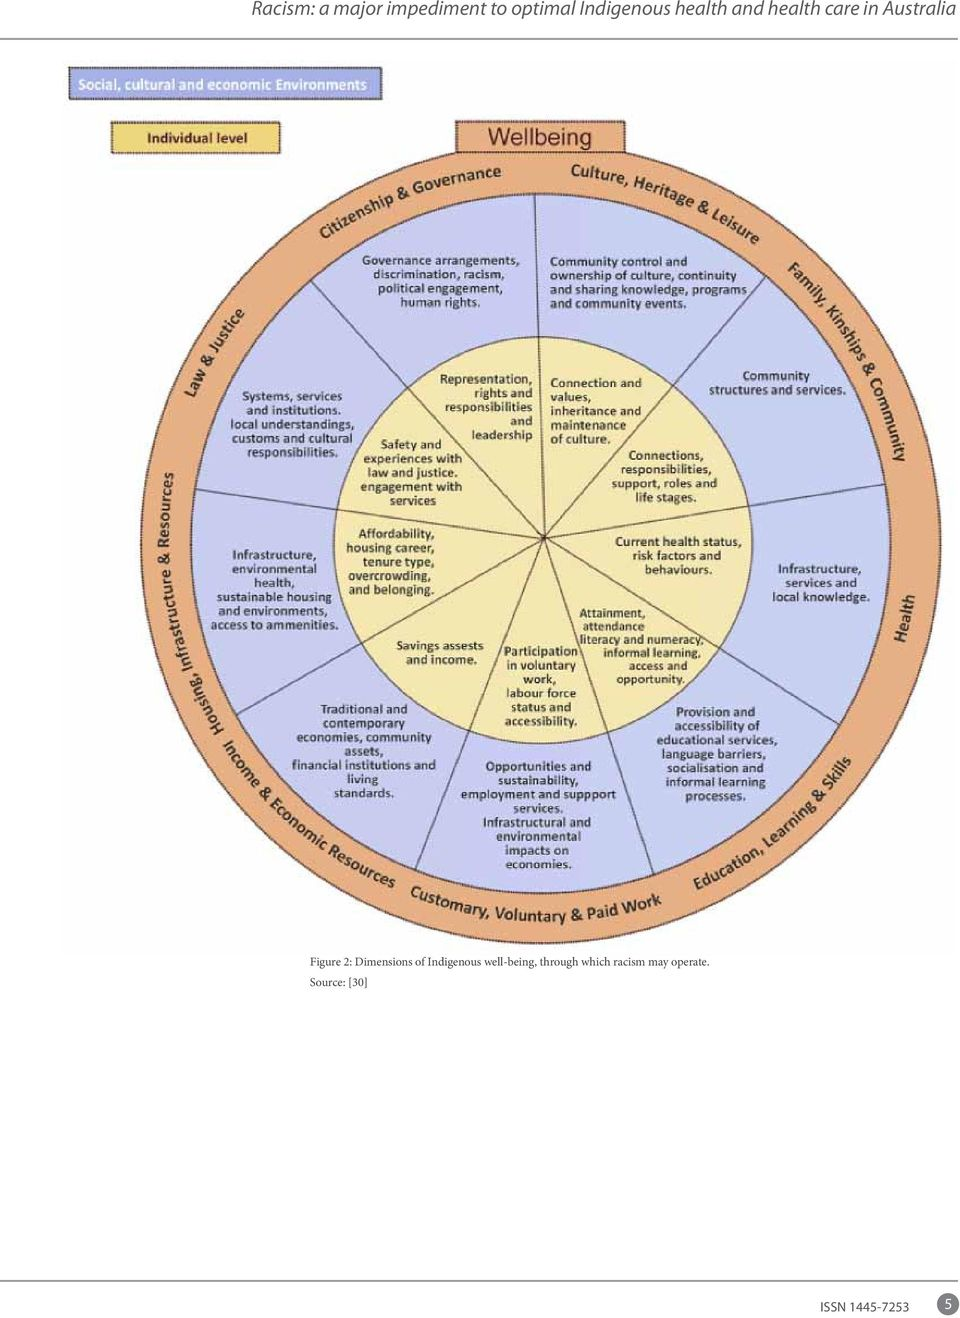 Dimensions of Indigenous well-being, through